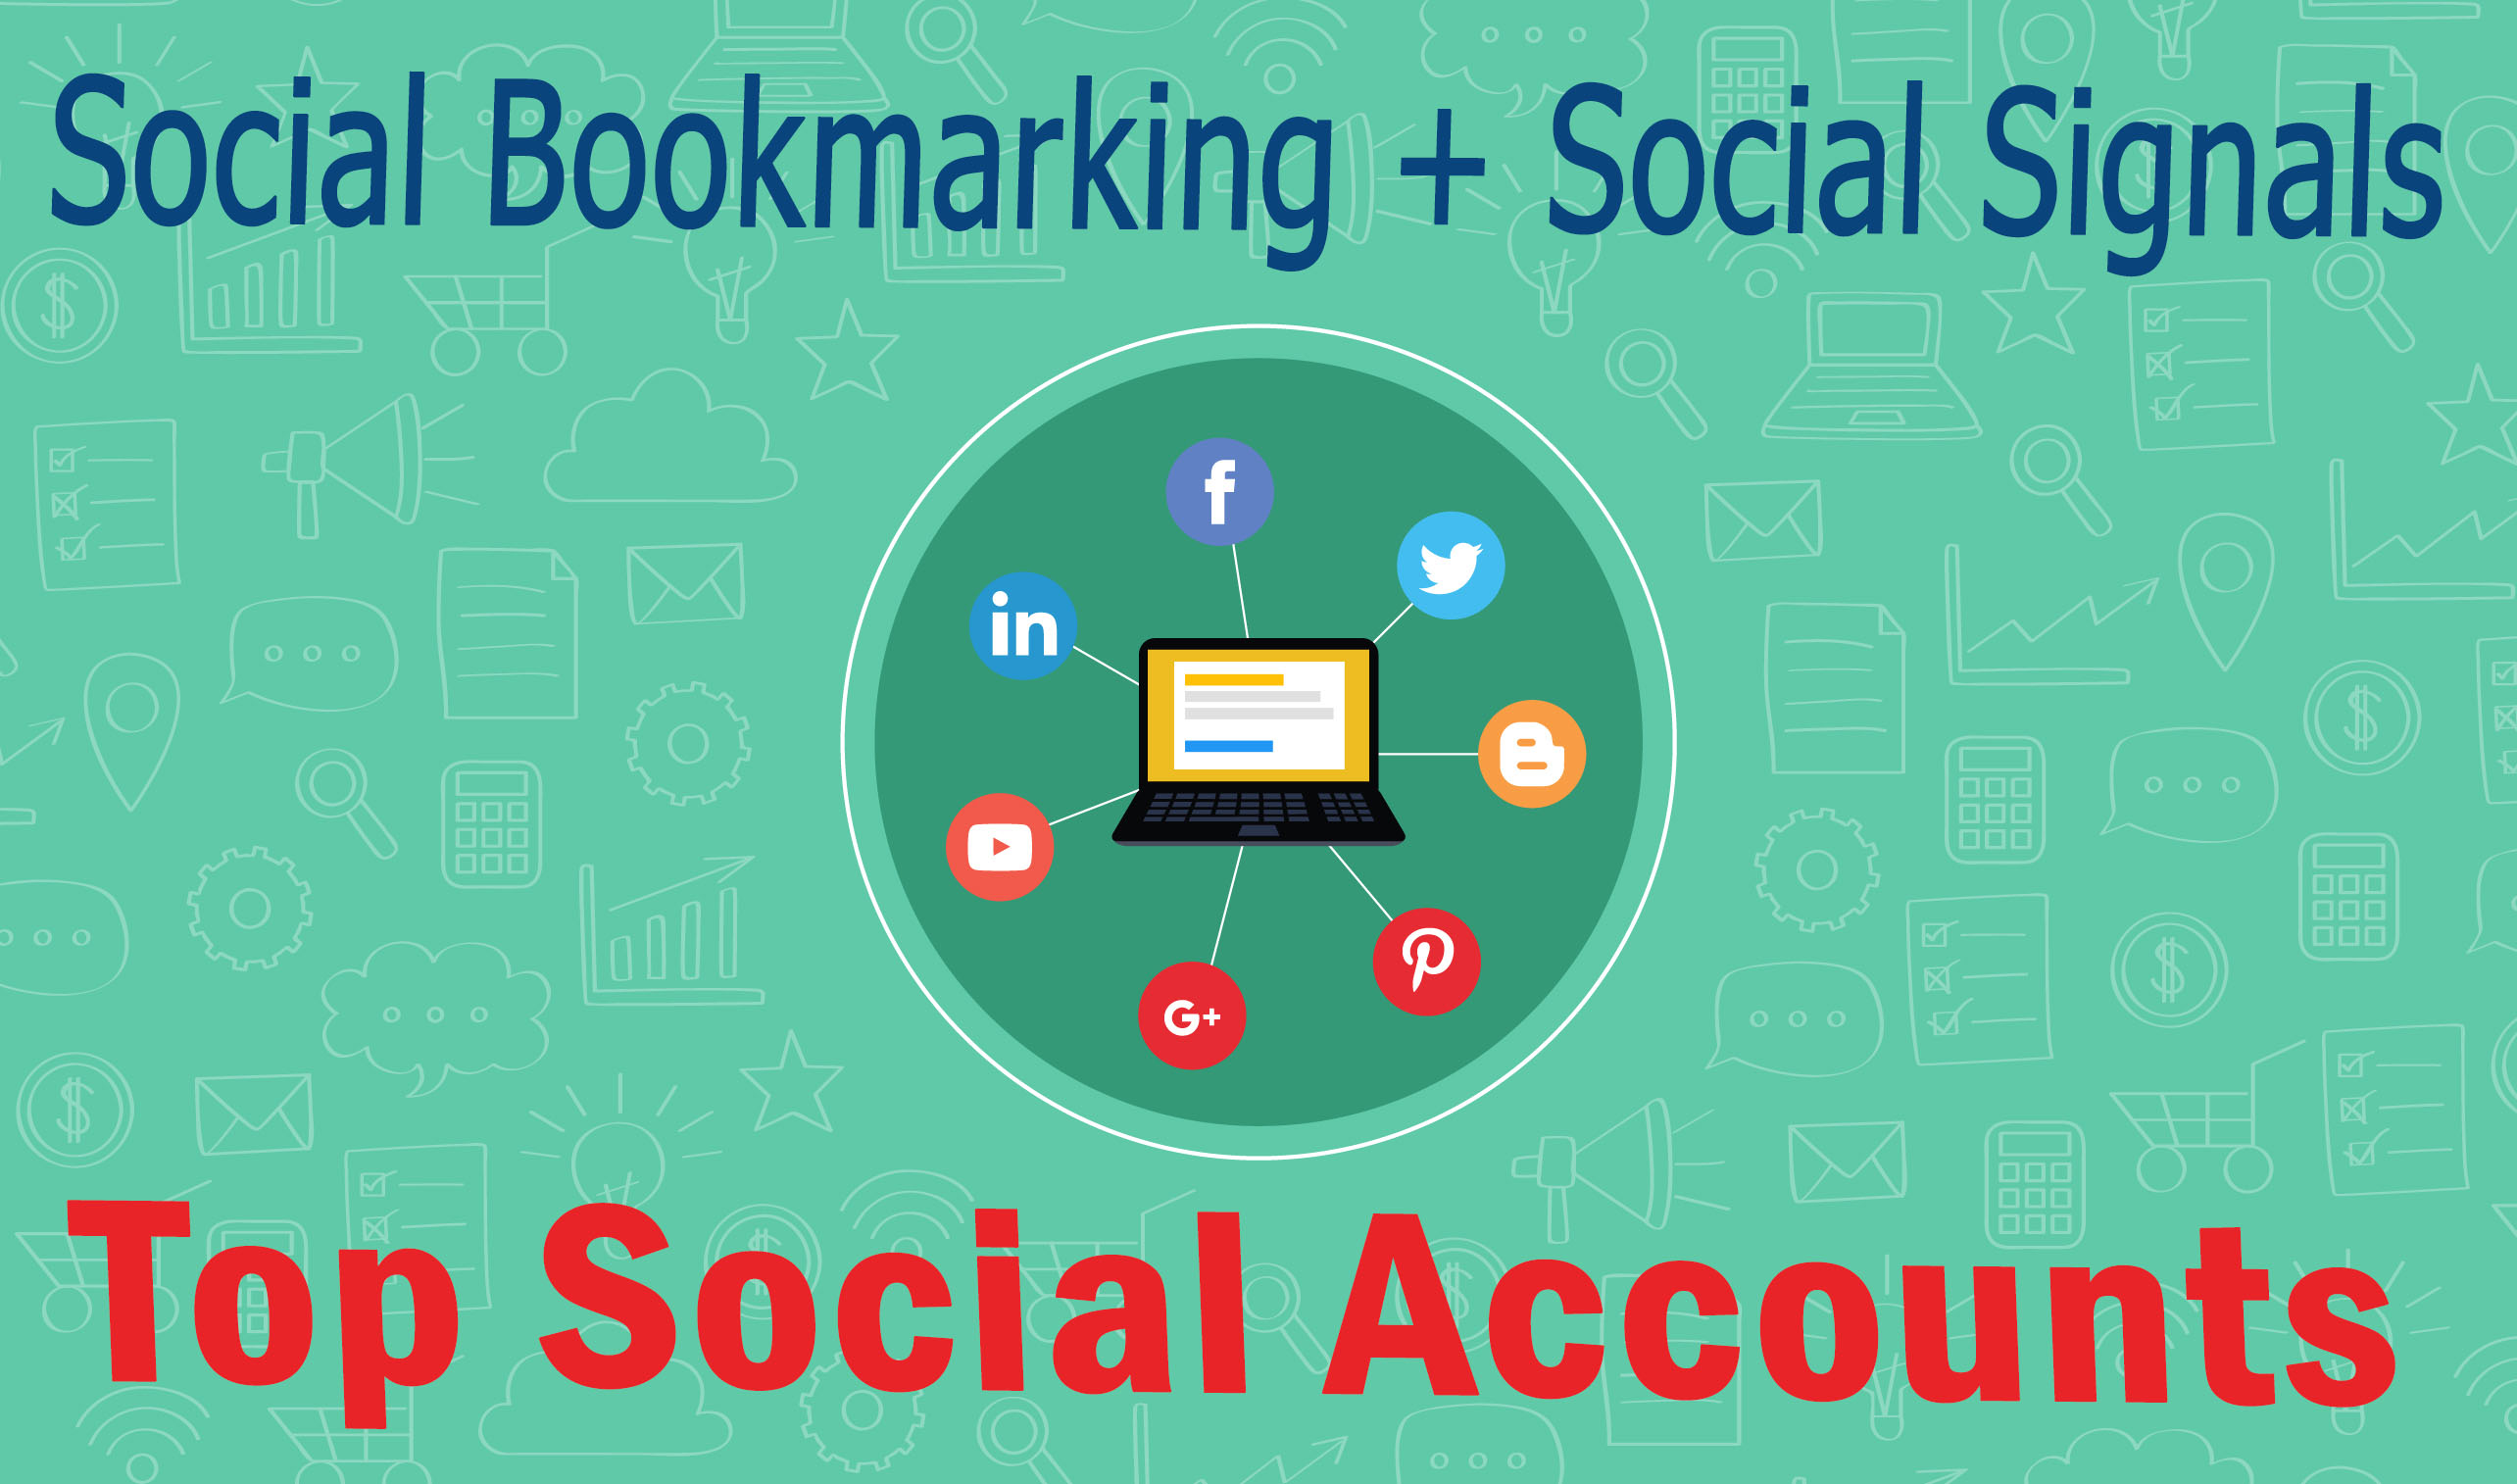 Get Bookmark Your Site On Top 20 Social bookmarking sites + 40 Social Signals